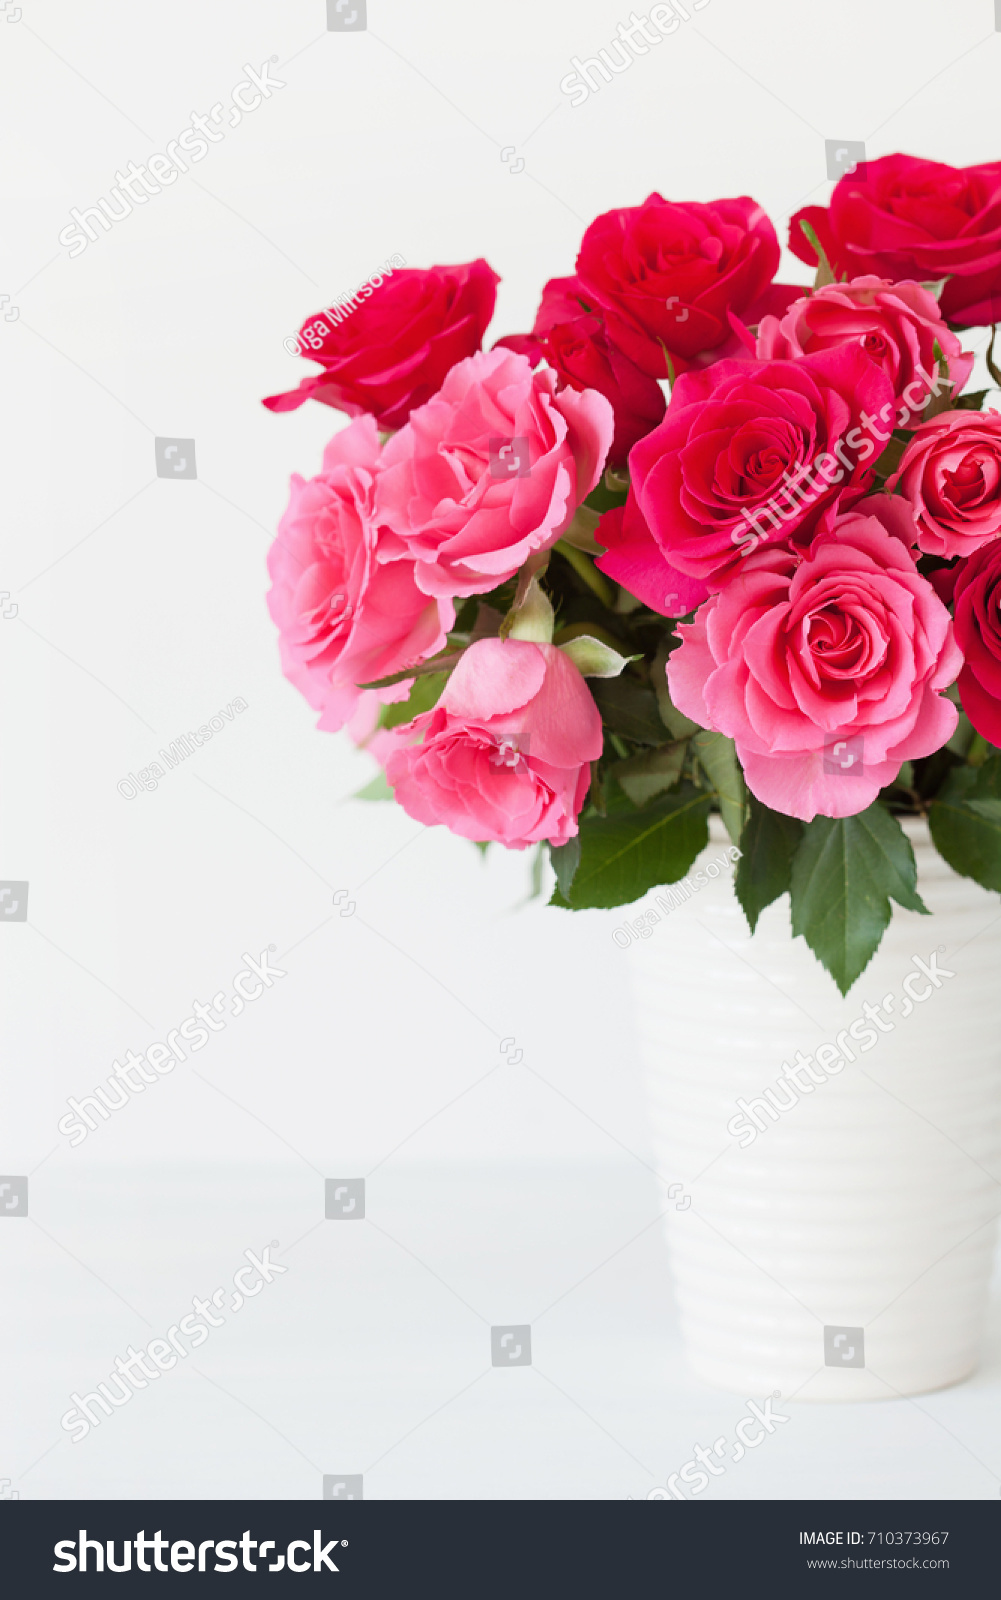 Beautiful Red Rose Flowers Bouquet Vase Stock Photo (Royalty Free ...